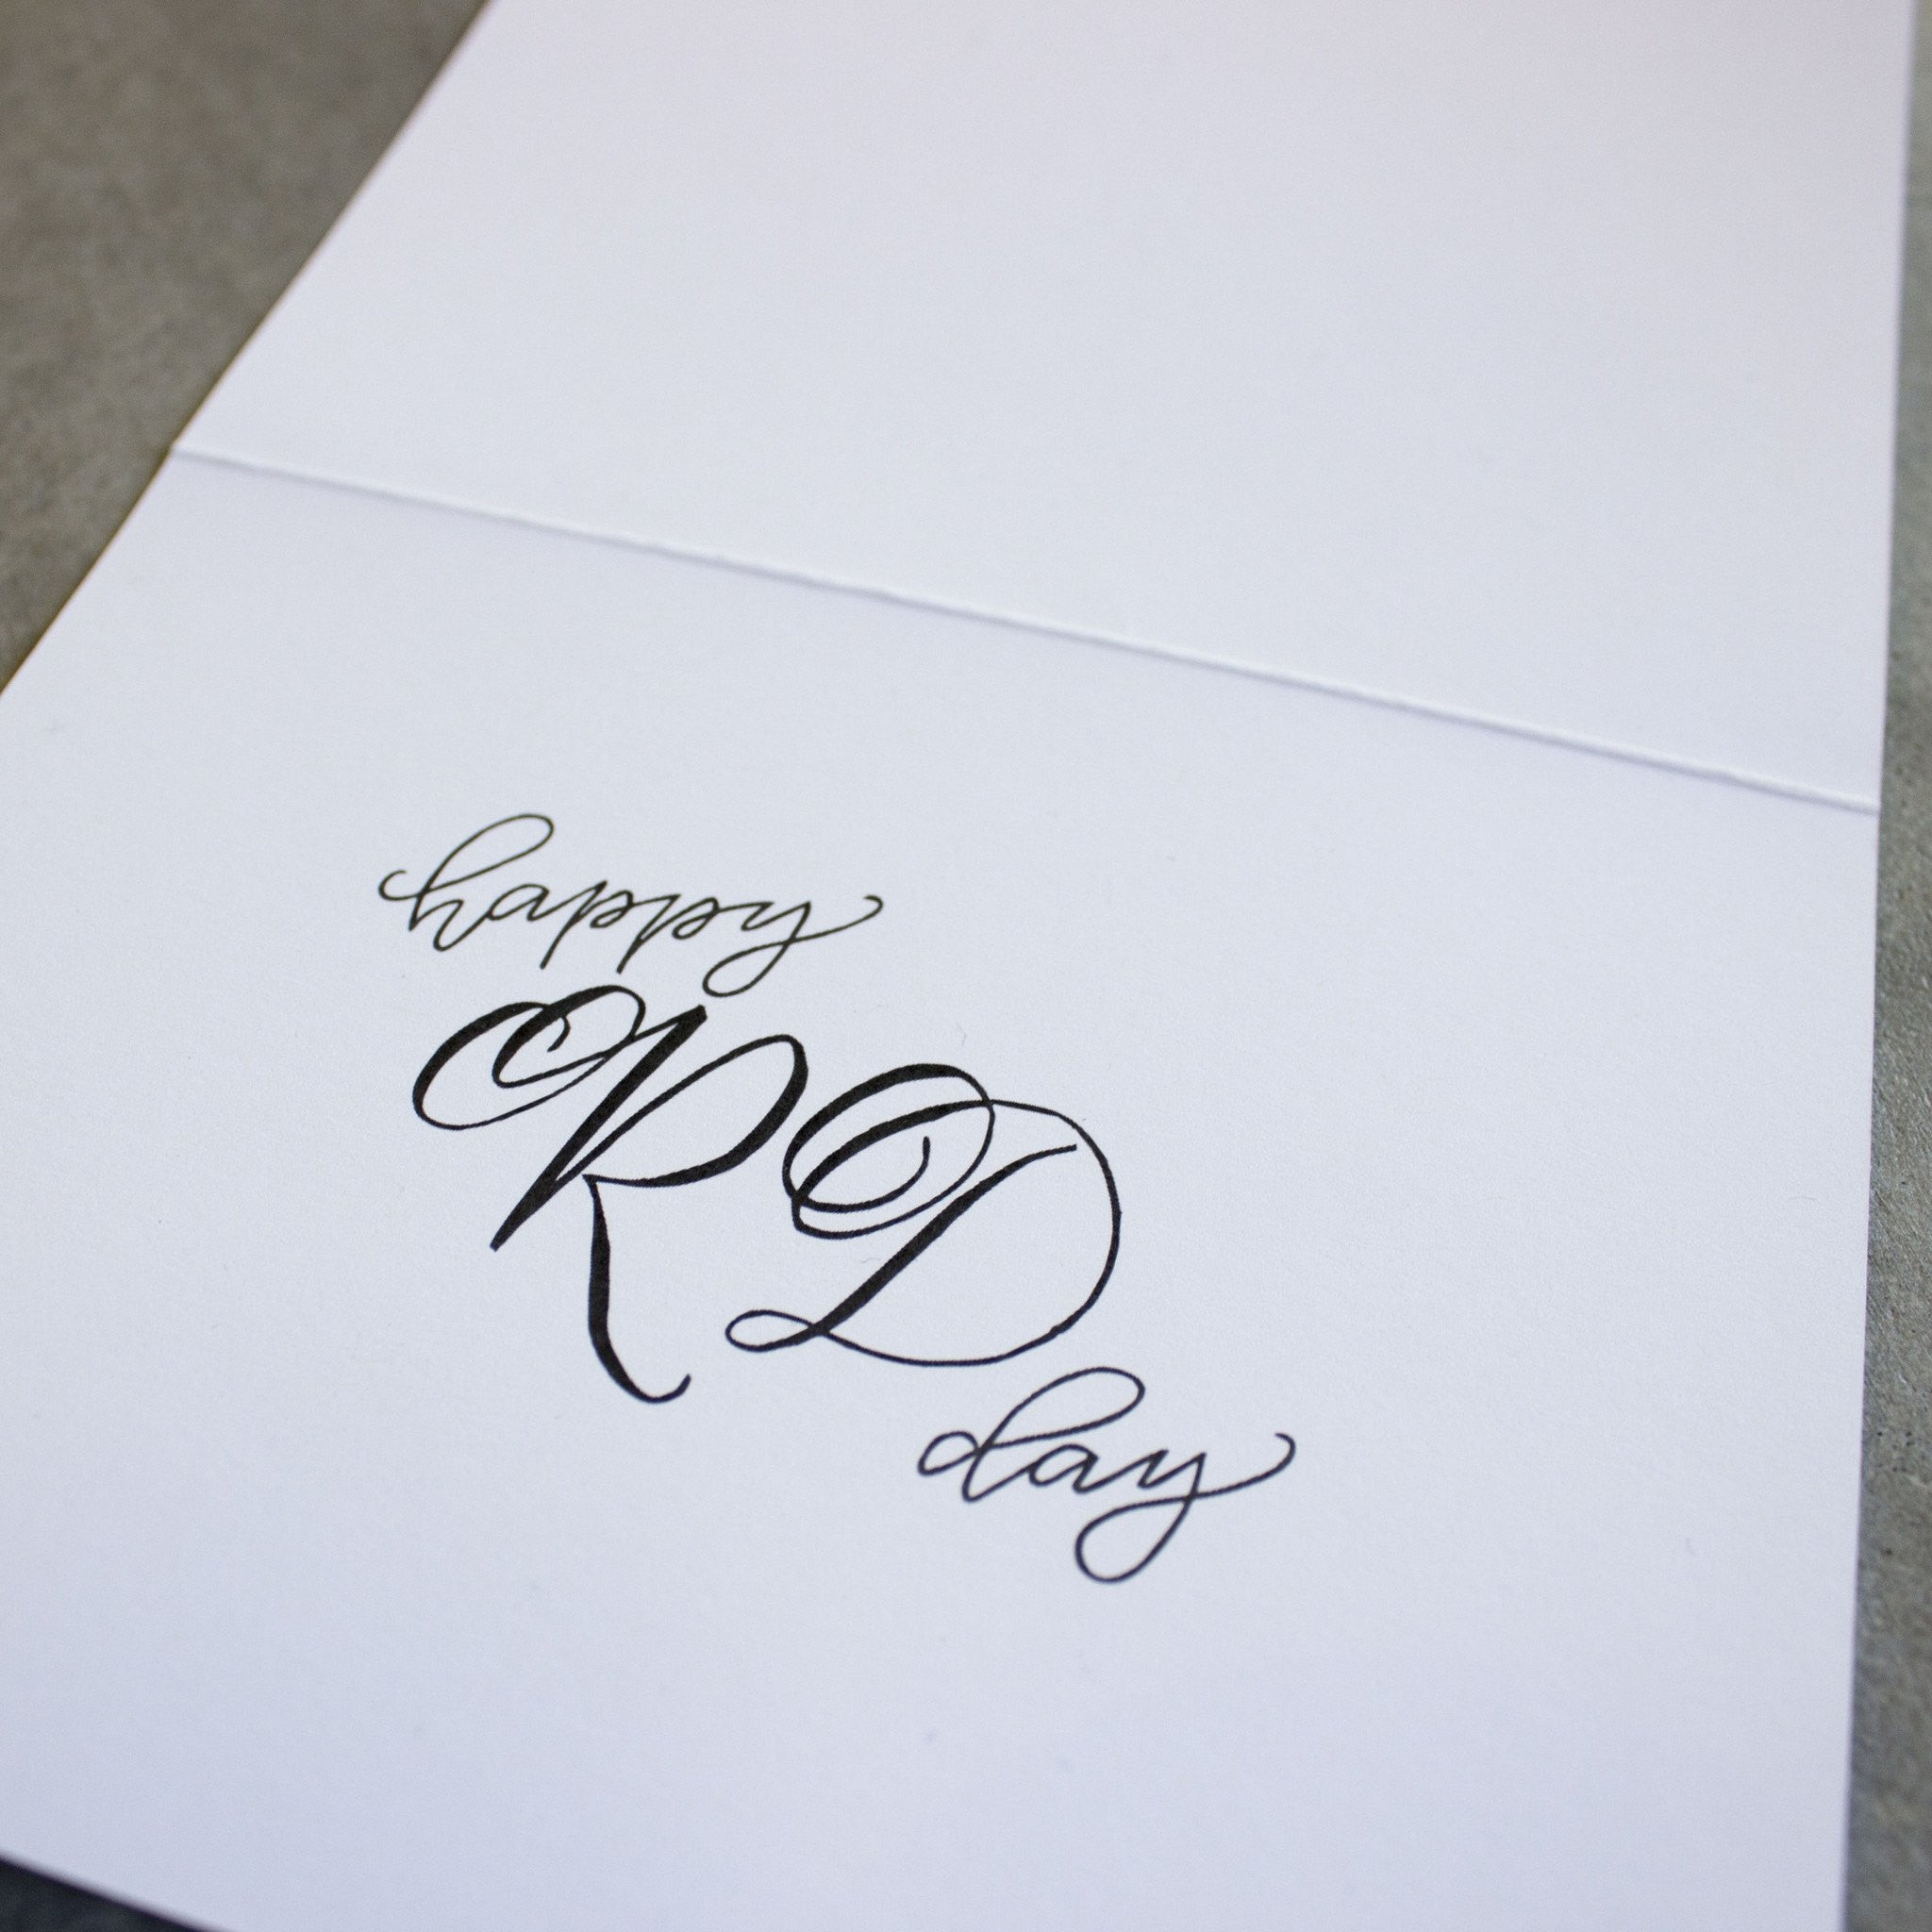 RD Day Handmade Greeting Card | RD Day | Dietitian Card